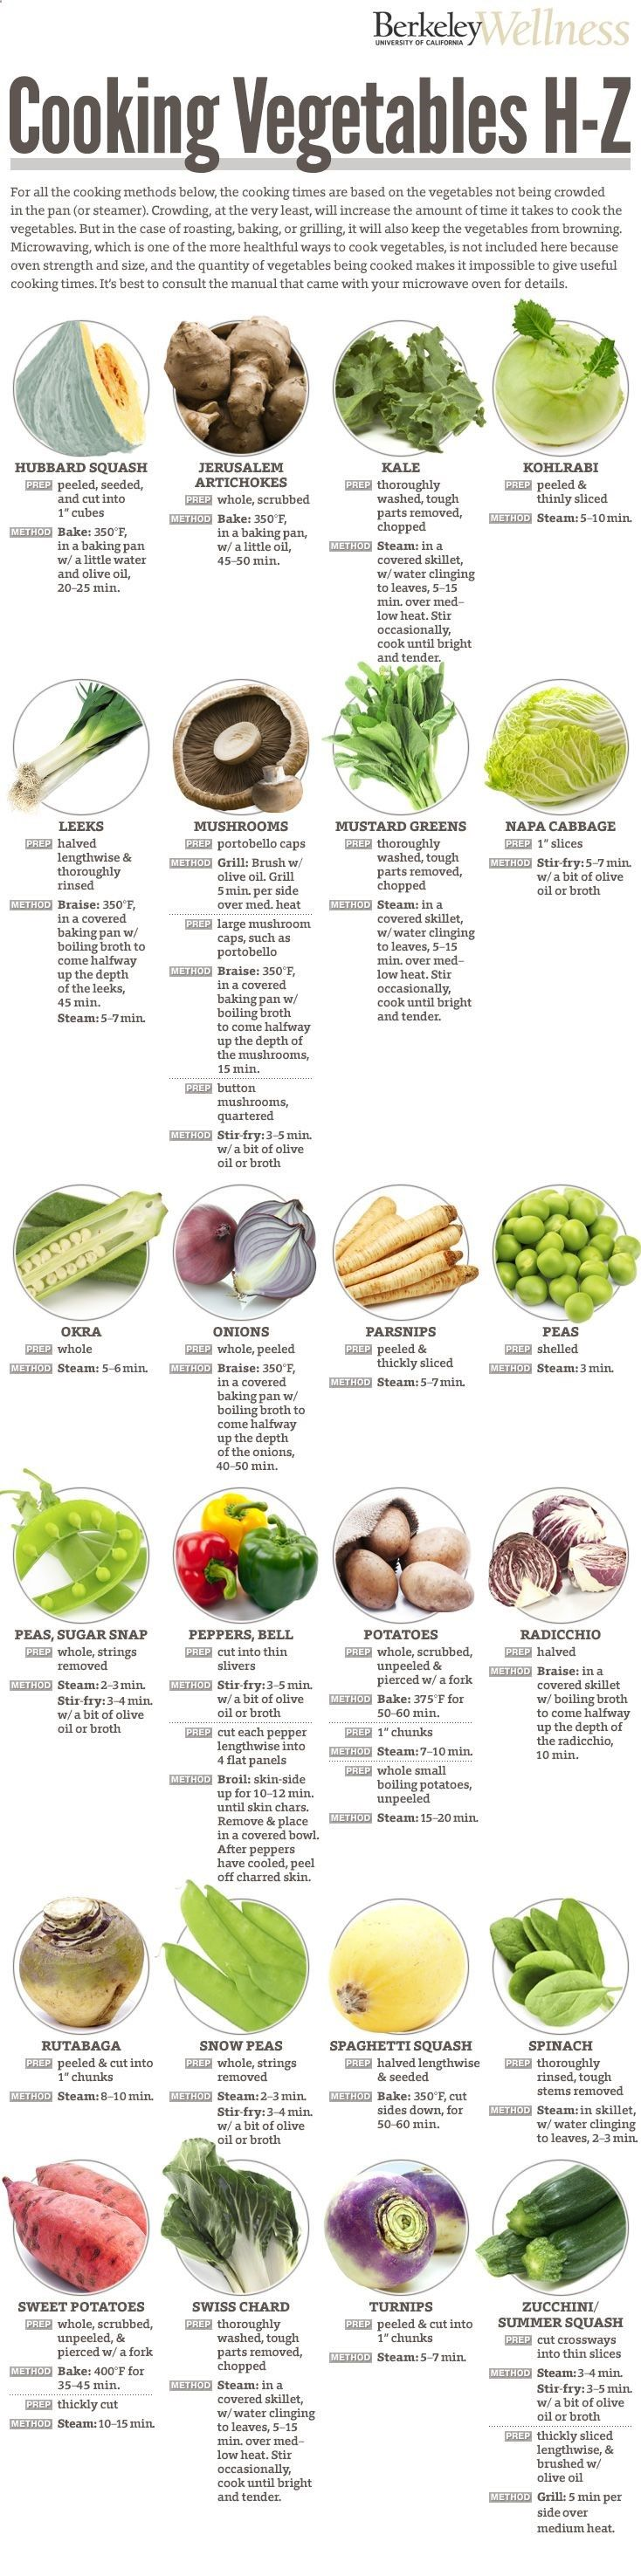 PART 2: How to Cook Vegetables the healthy way from Jerusalem Artichokes to Zucchini